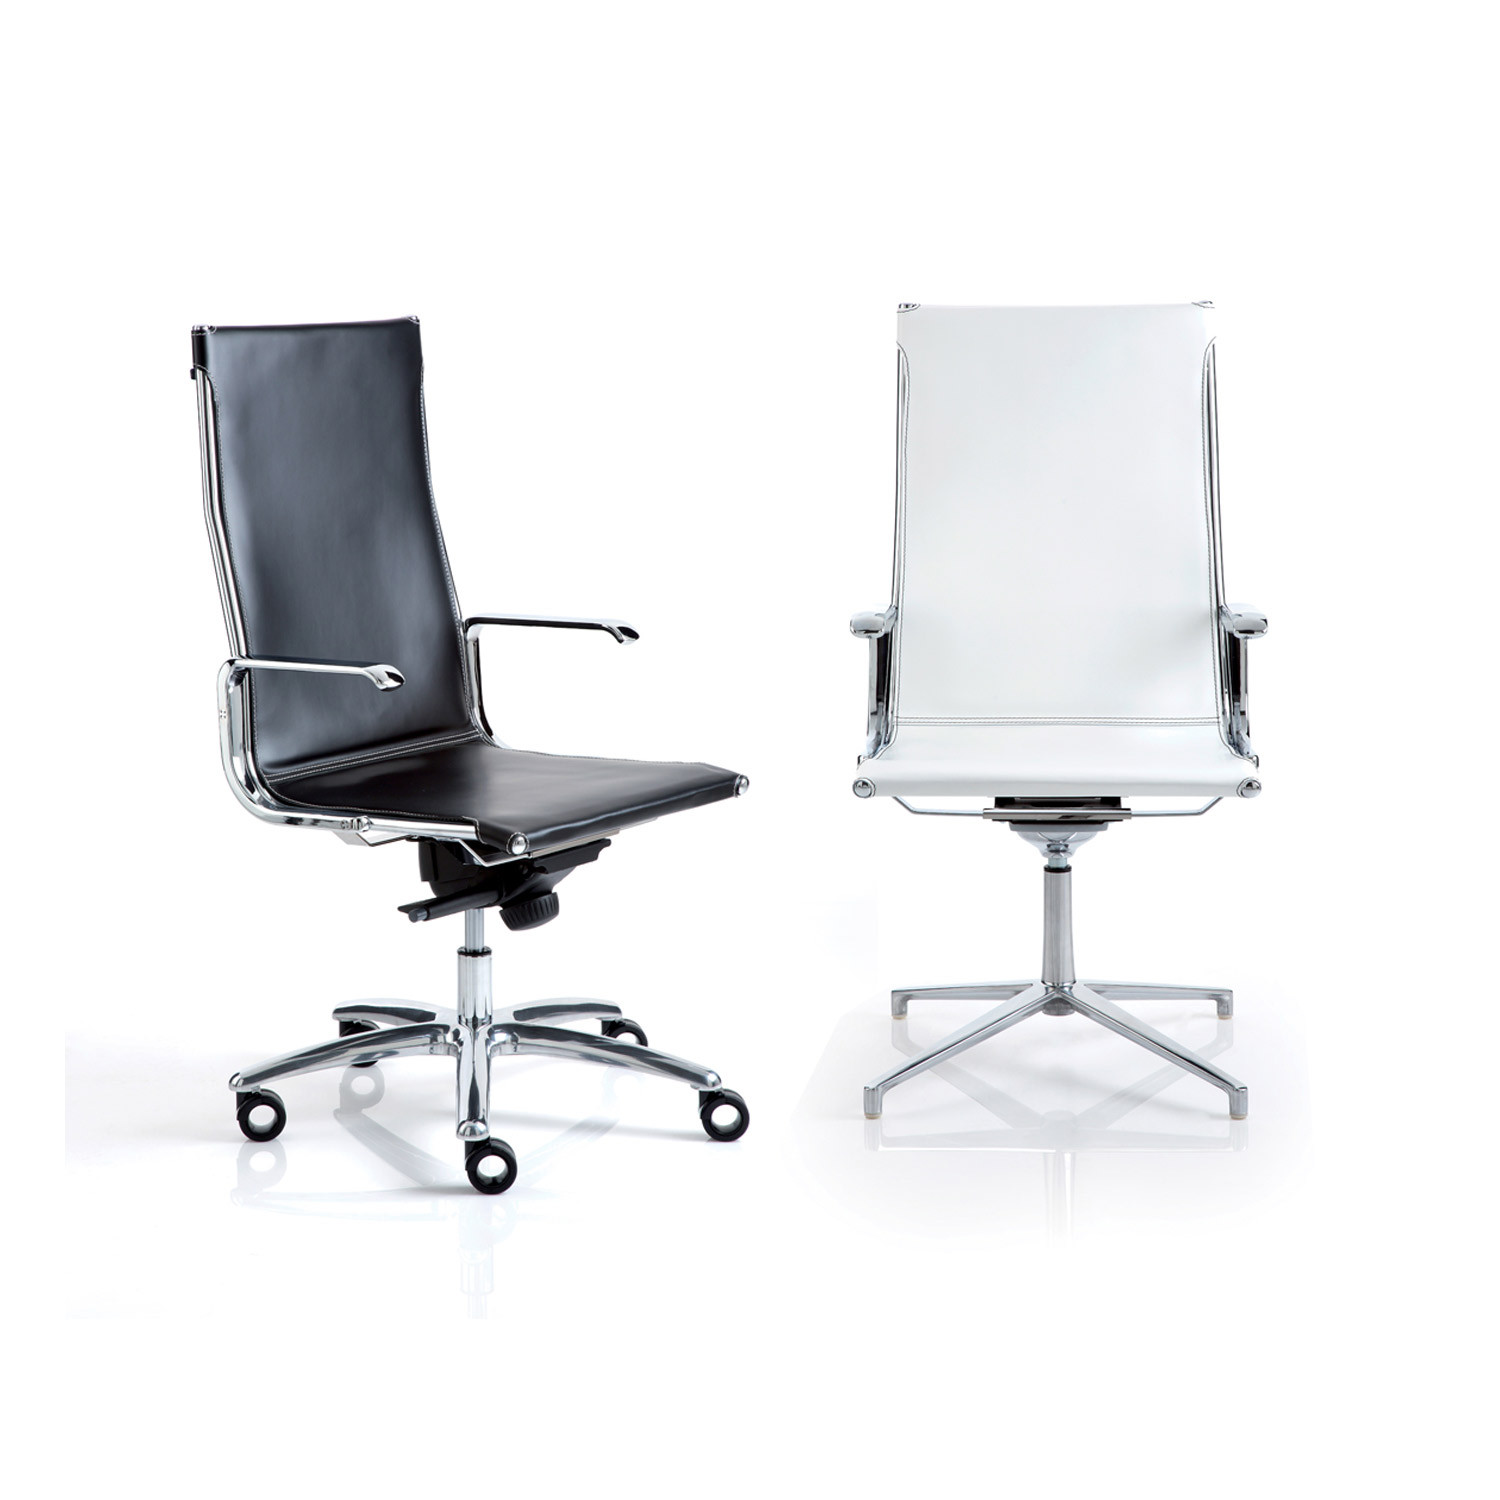 Taylord Executive Chairs